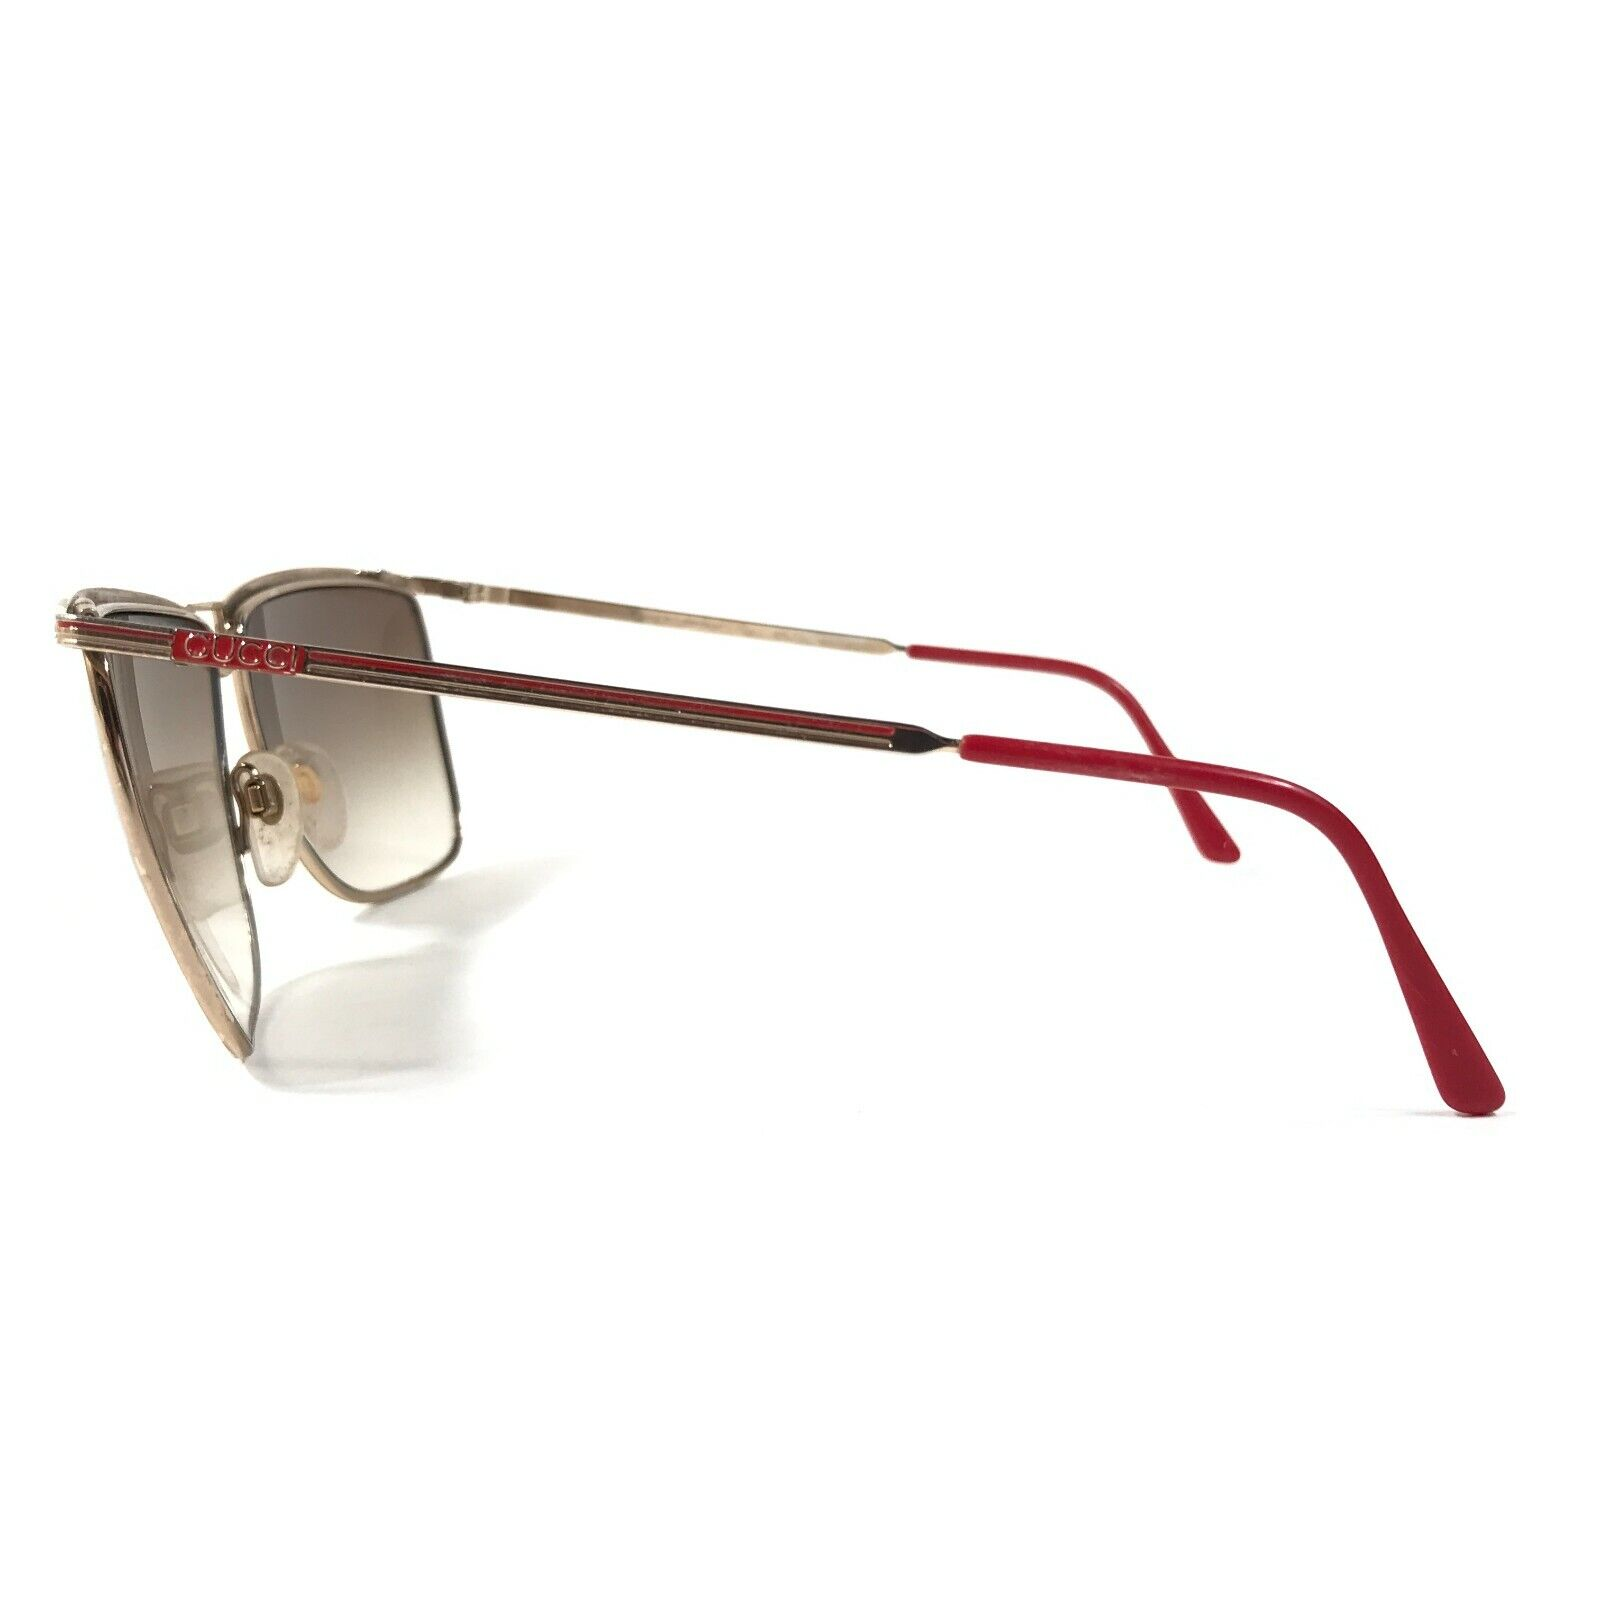 Vintage Gucci Sunglasses 70s 80s Gold Red Logos B… - image 6